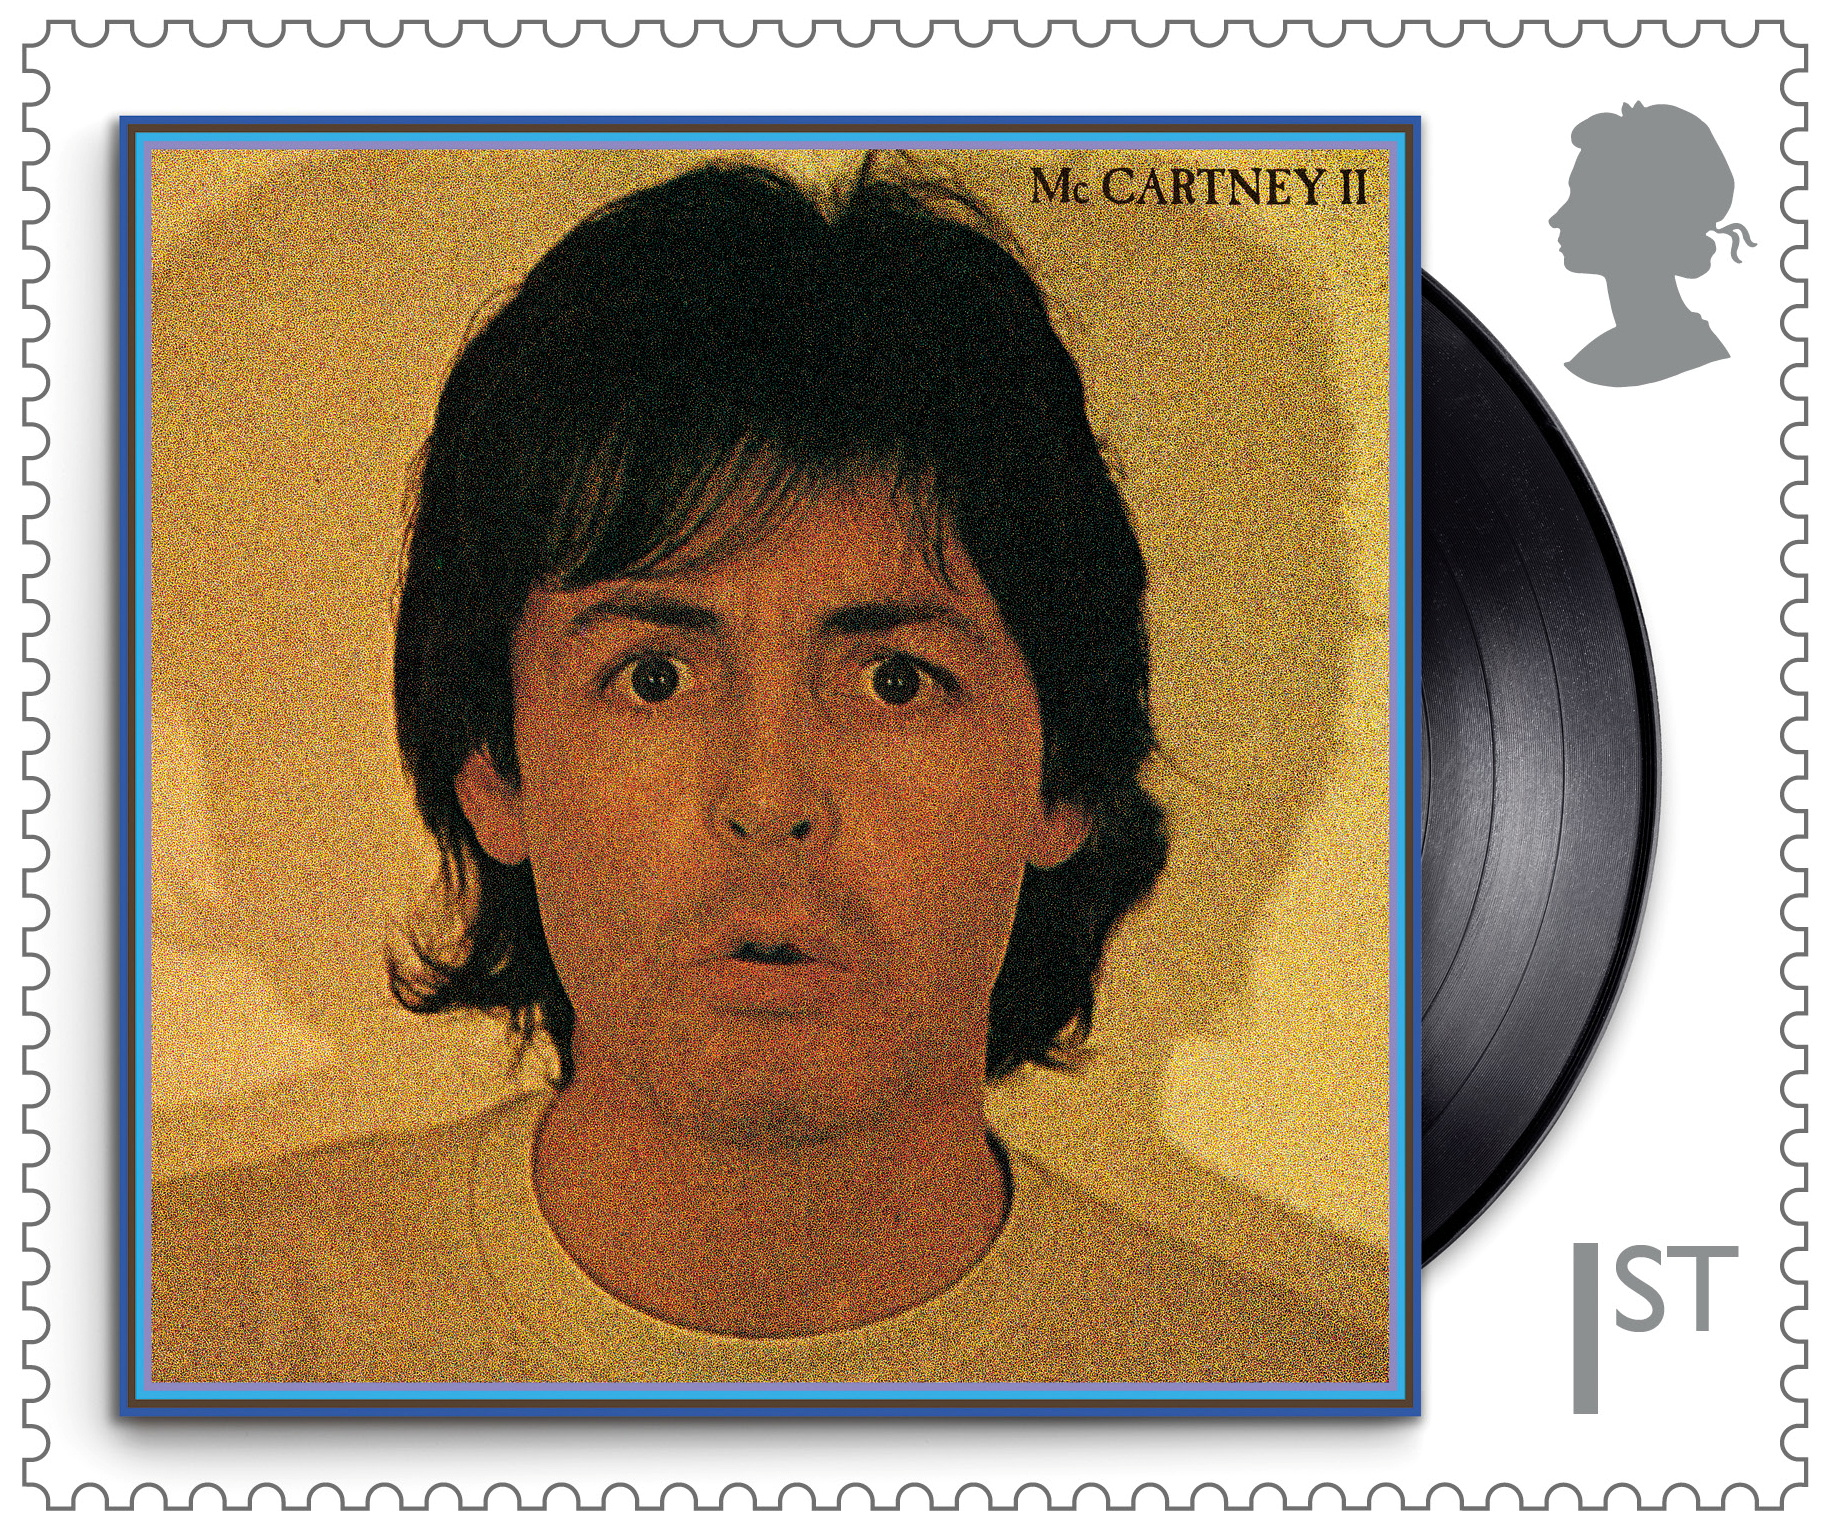 A still of a Royal Mail stamp created in honor of Sir Paul McCartney shows the cover of his studio album